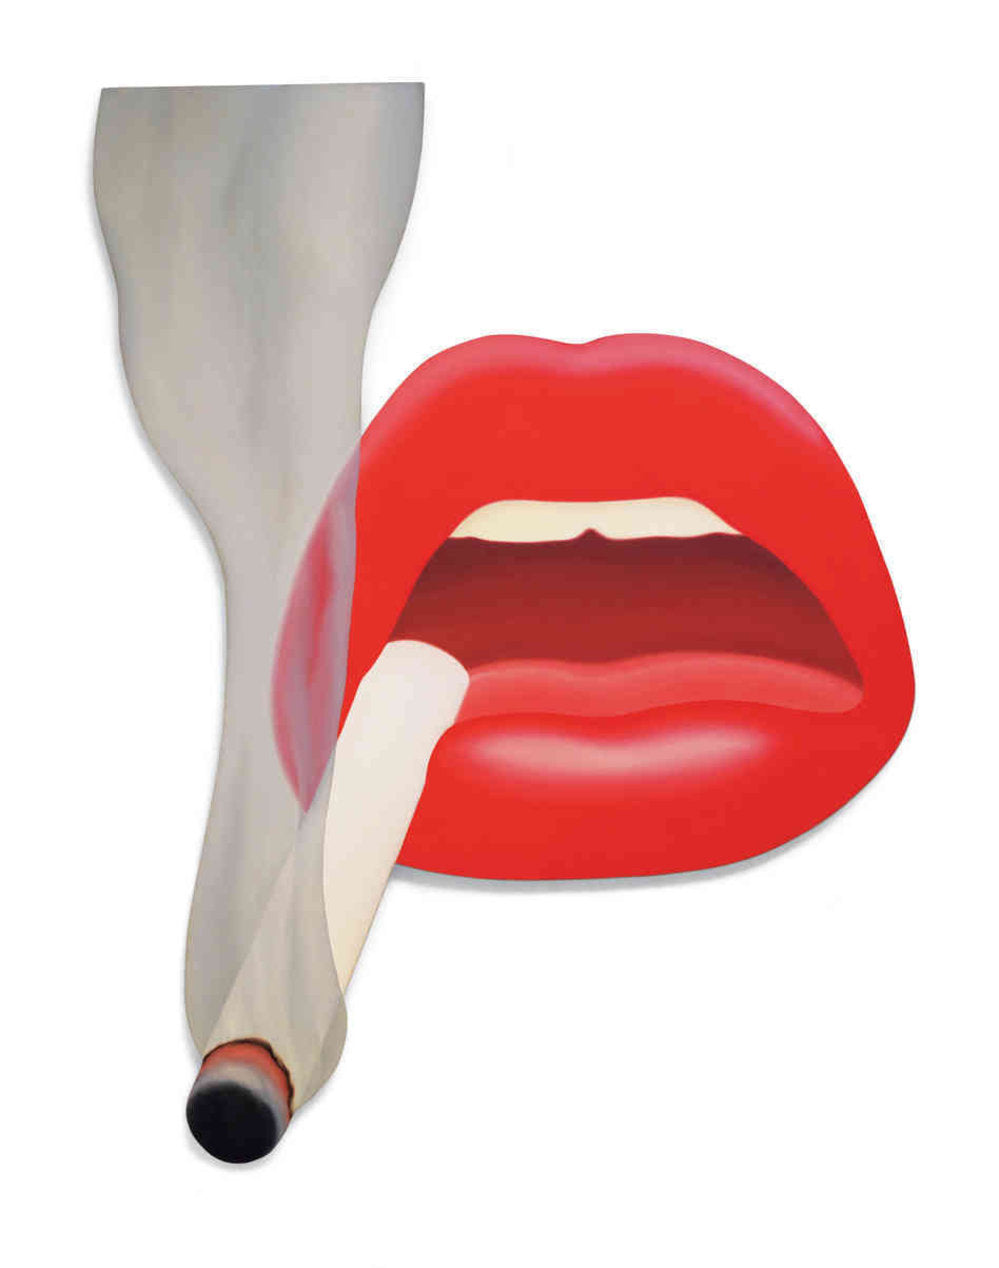 Tom Wesselmann art